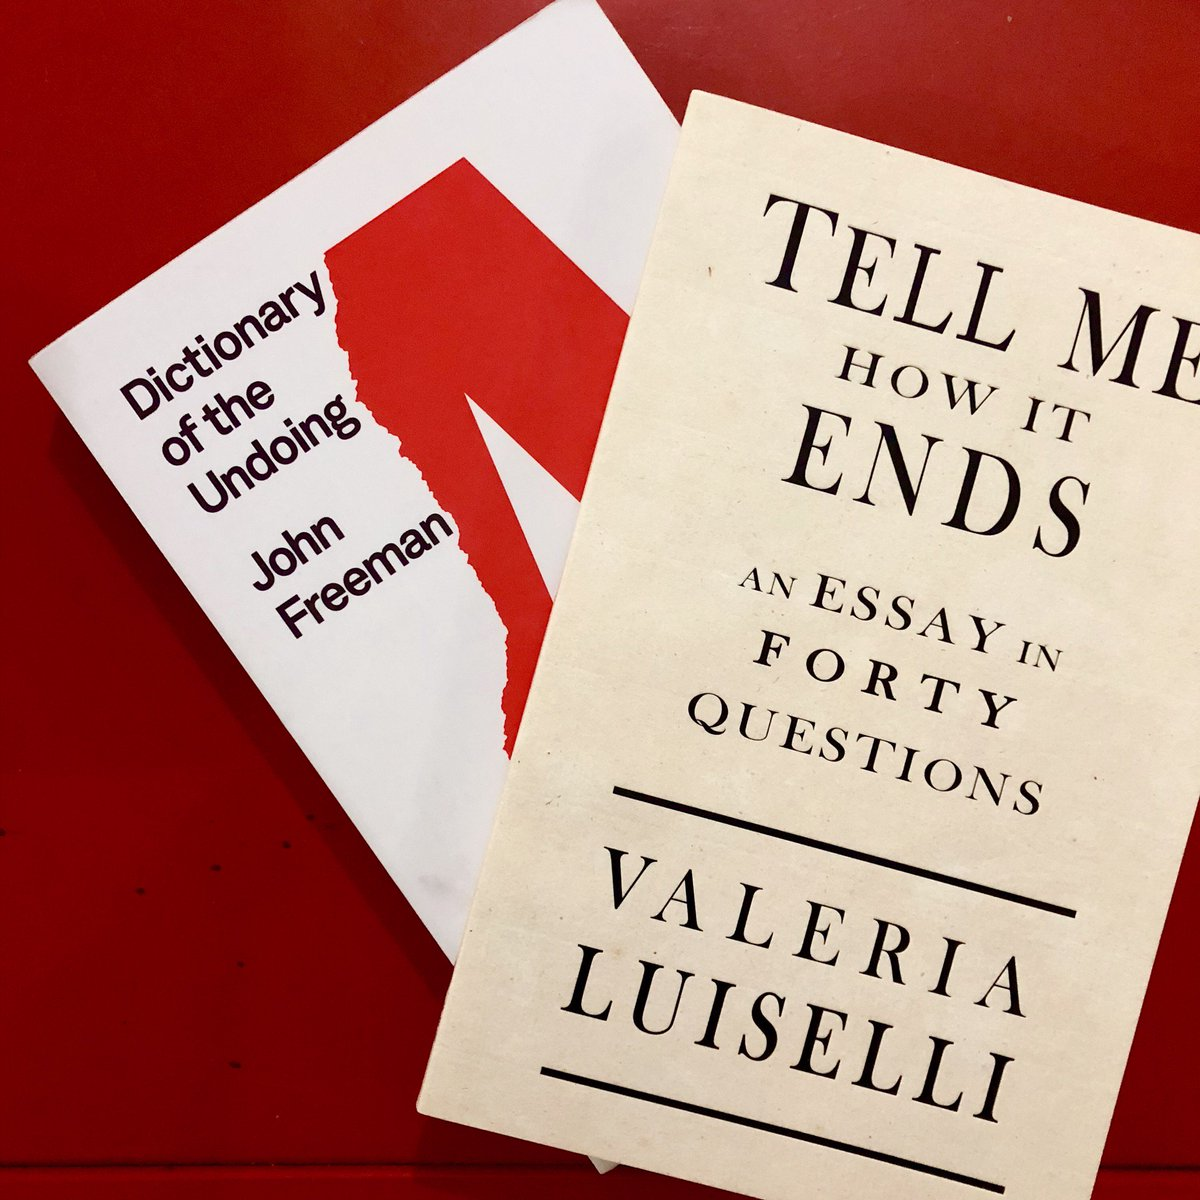 """Coming up Tuesday I'll be @mcnallyjackson in nyc at 7 pm with @ValeriaLuiselli talking over what's happening to language in these infernal times & """"Dictionary of the Undoing,"""" which is out that day from @mcdbooks"""